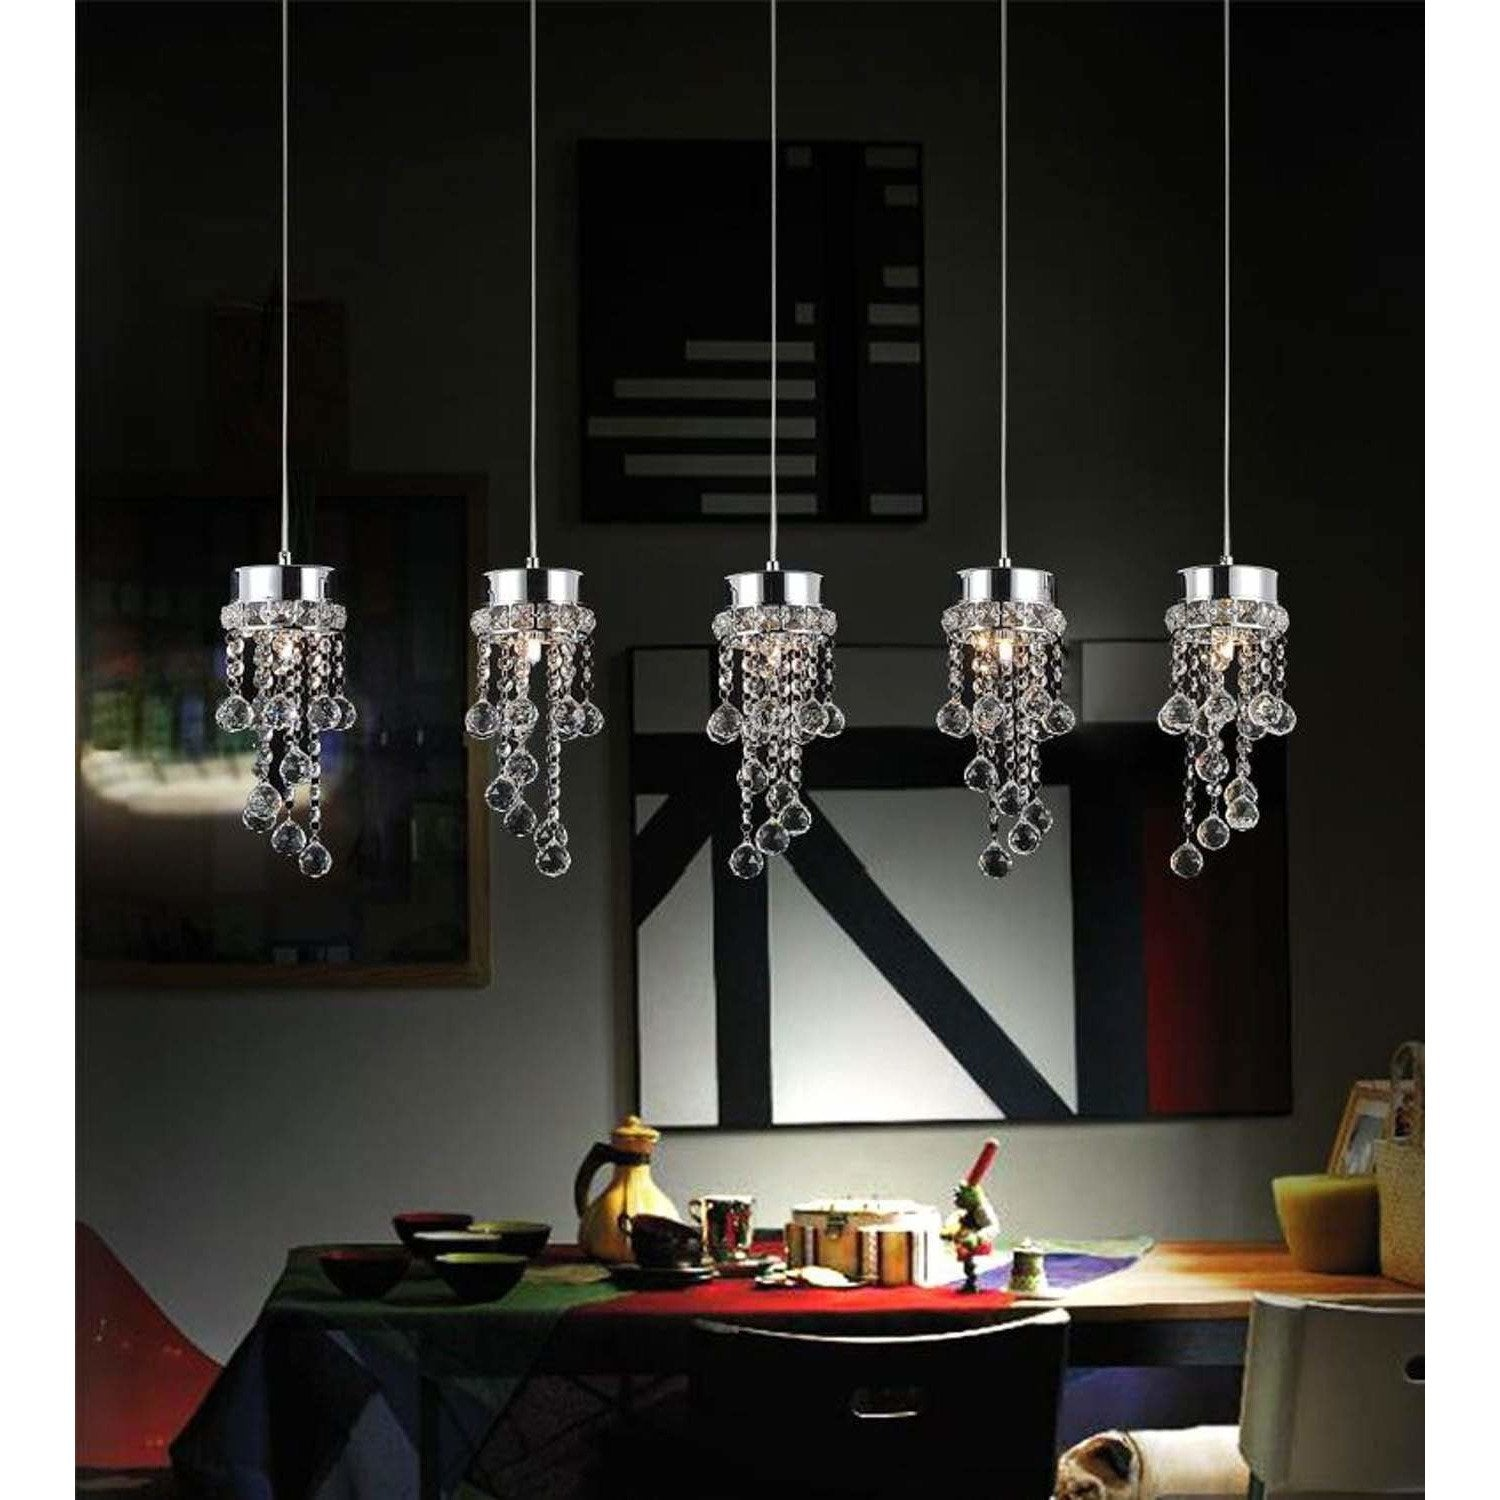 CWI Lighting Pendants Chrome / K9 Clear Monica 5 Light Multi Light Pendant with Chrome finish by CWI Lighting 5072P36C-RC